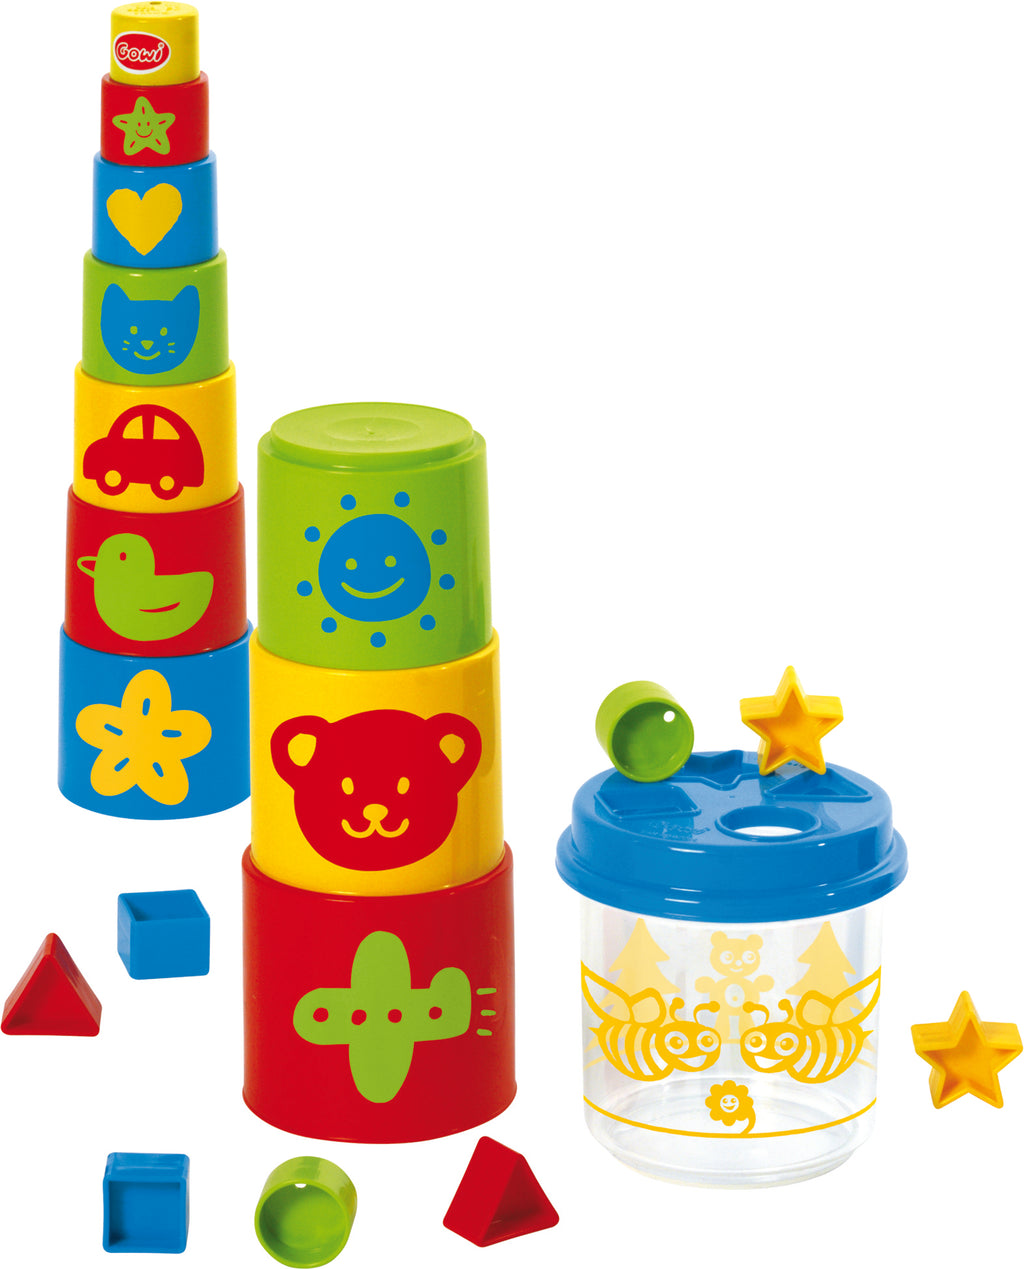 Gowi Pyramid & Shape Sorter Box